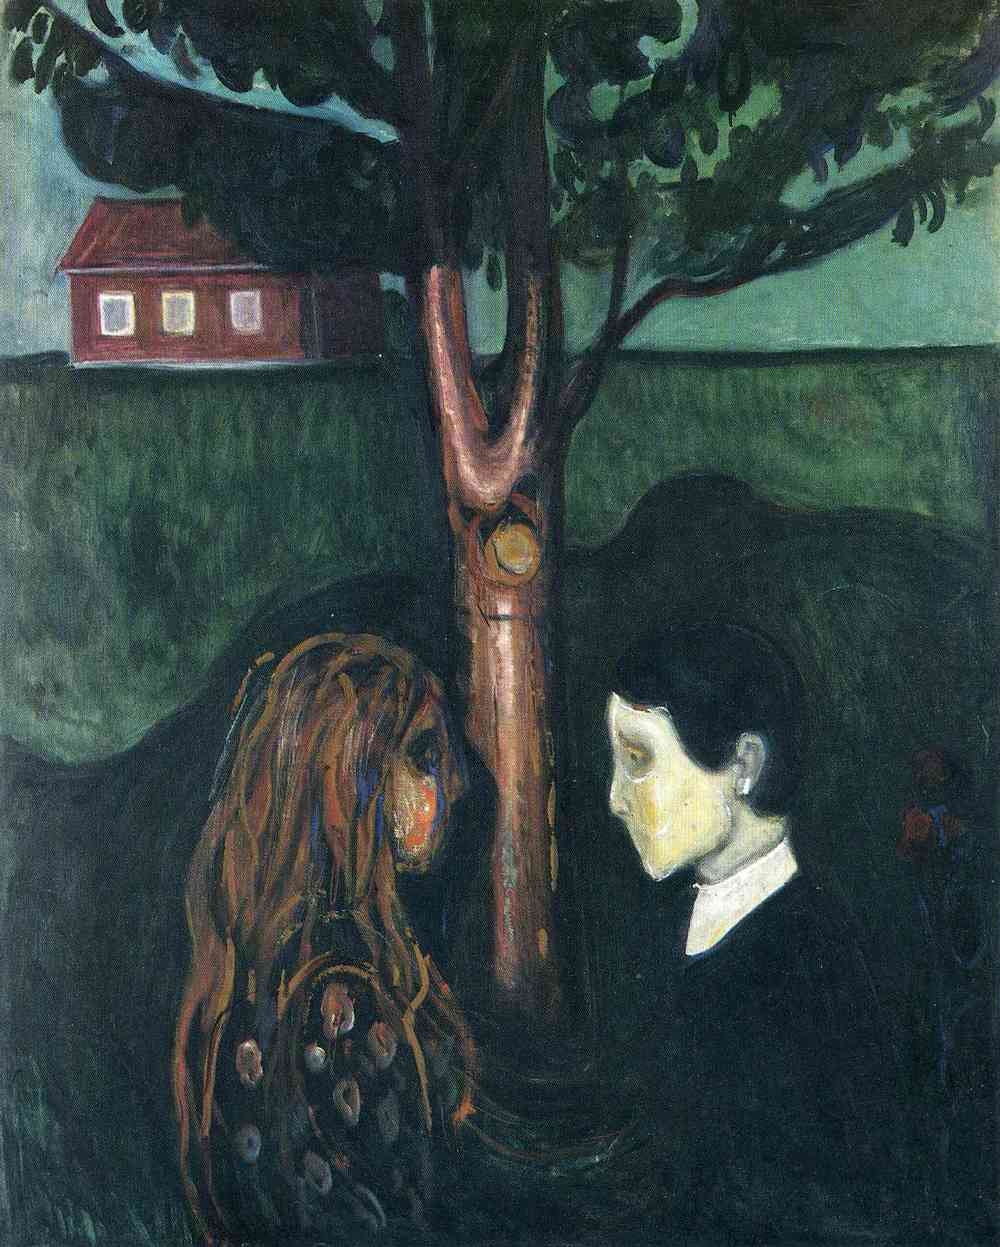 Eye in Eye ; Edvard Munch; 1894; Oil on canvas; 136 x 110 cm; The Munch Museum